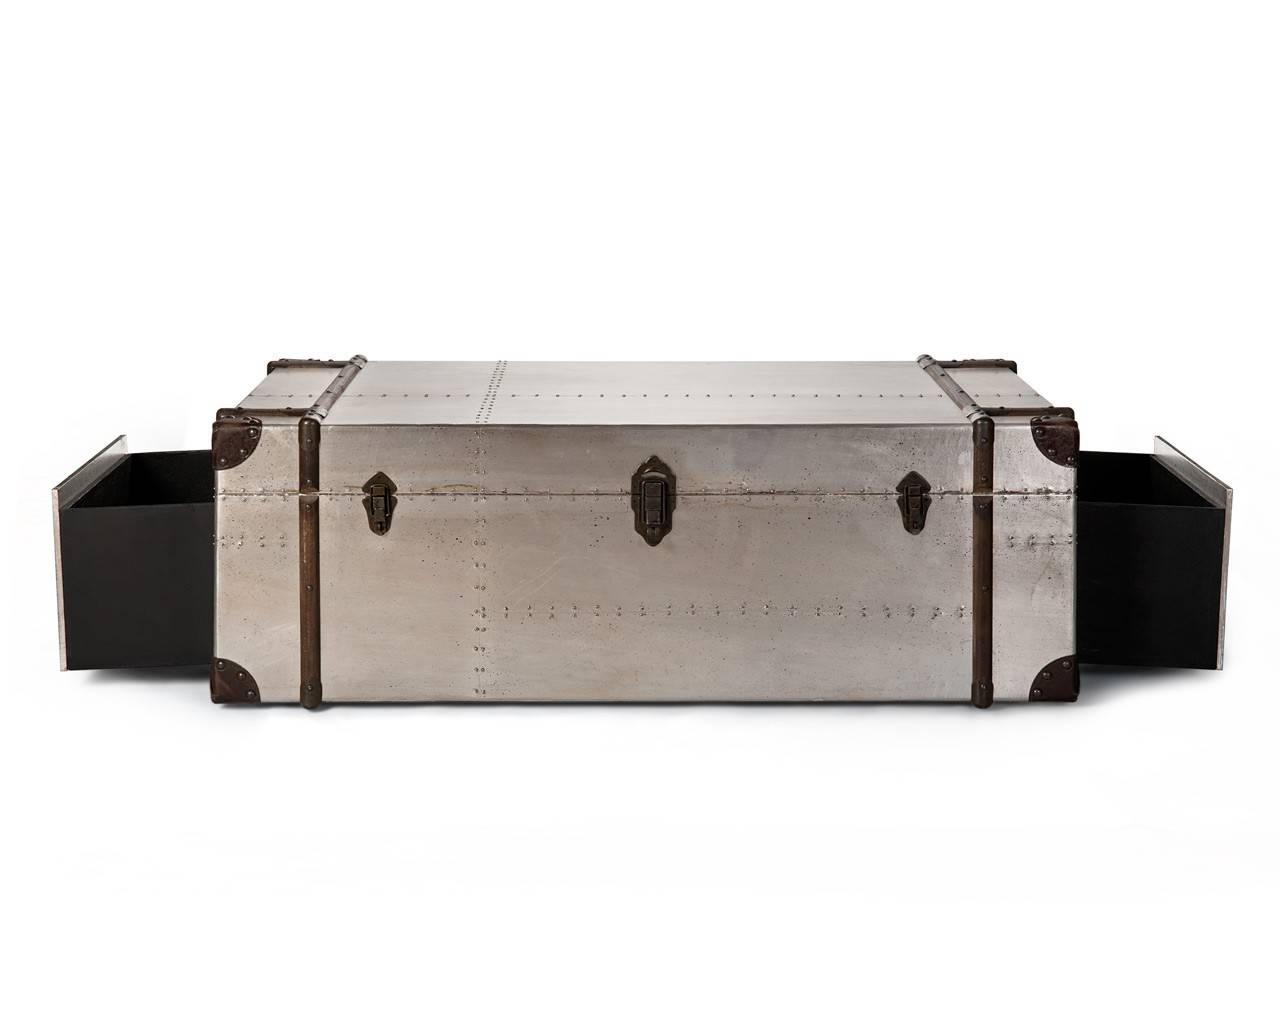 Aluminium Coffee Table - Aluminium Furniture inside Aluminium Coffee Tables (Image 3 of 30)